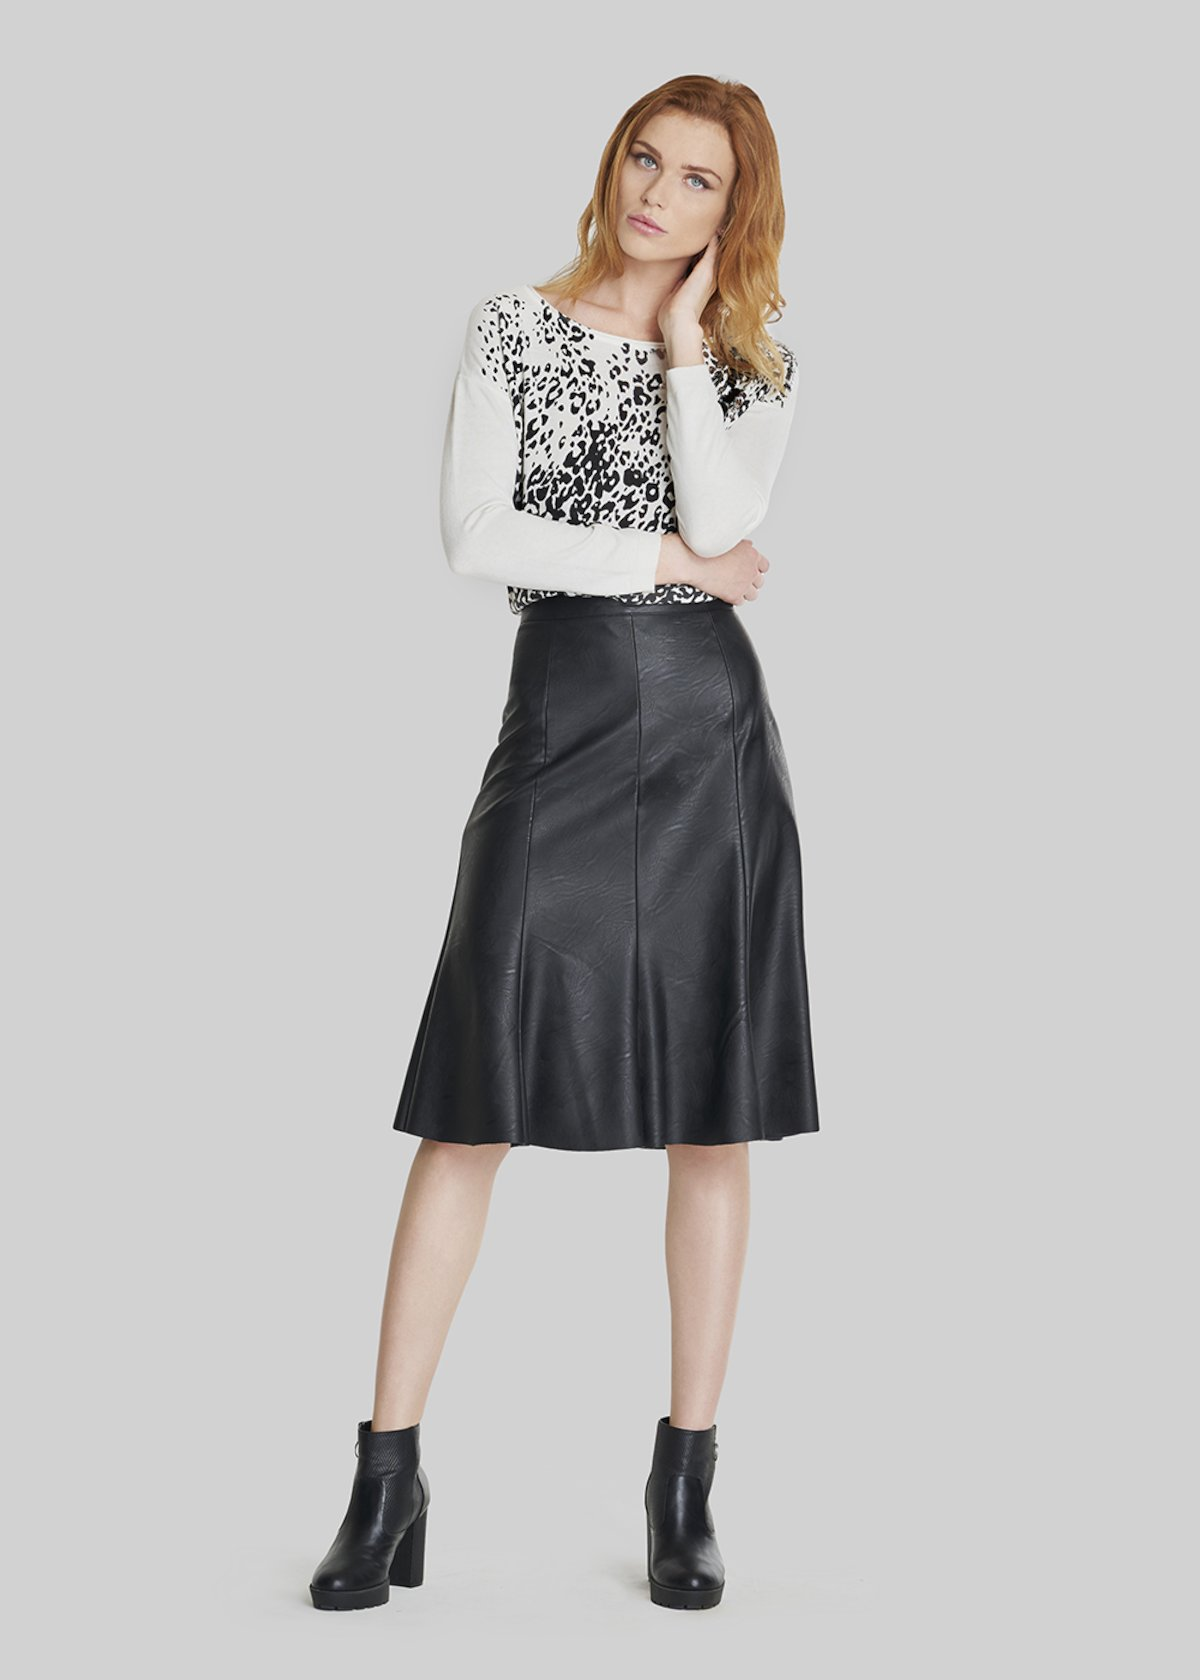 Gecky skirt of faux leather in wedges